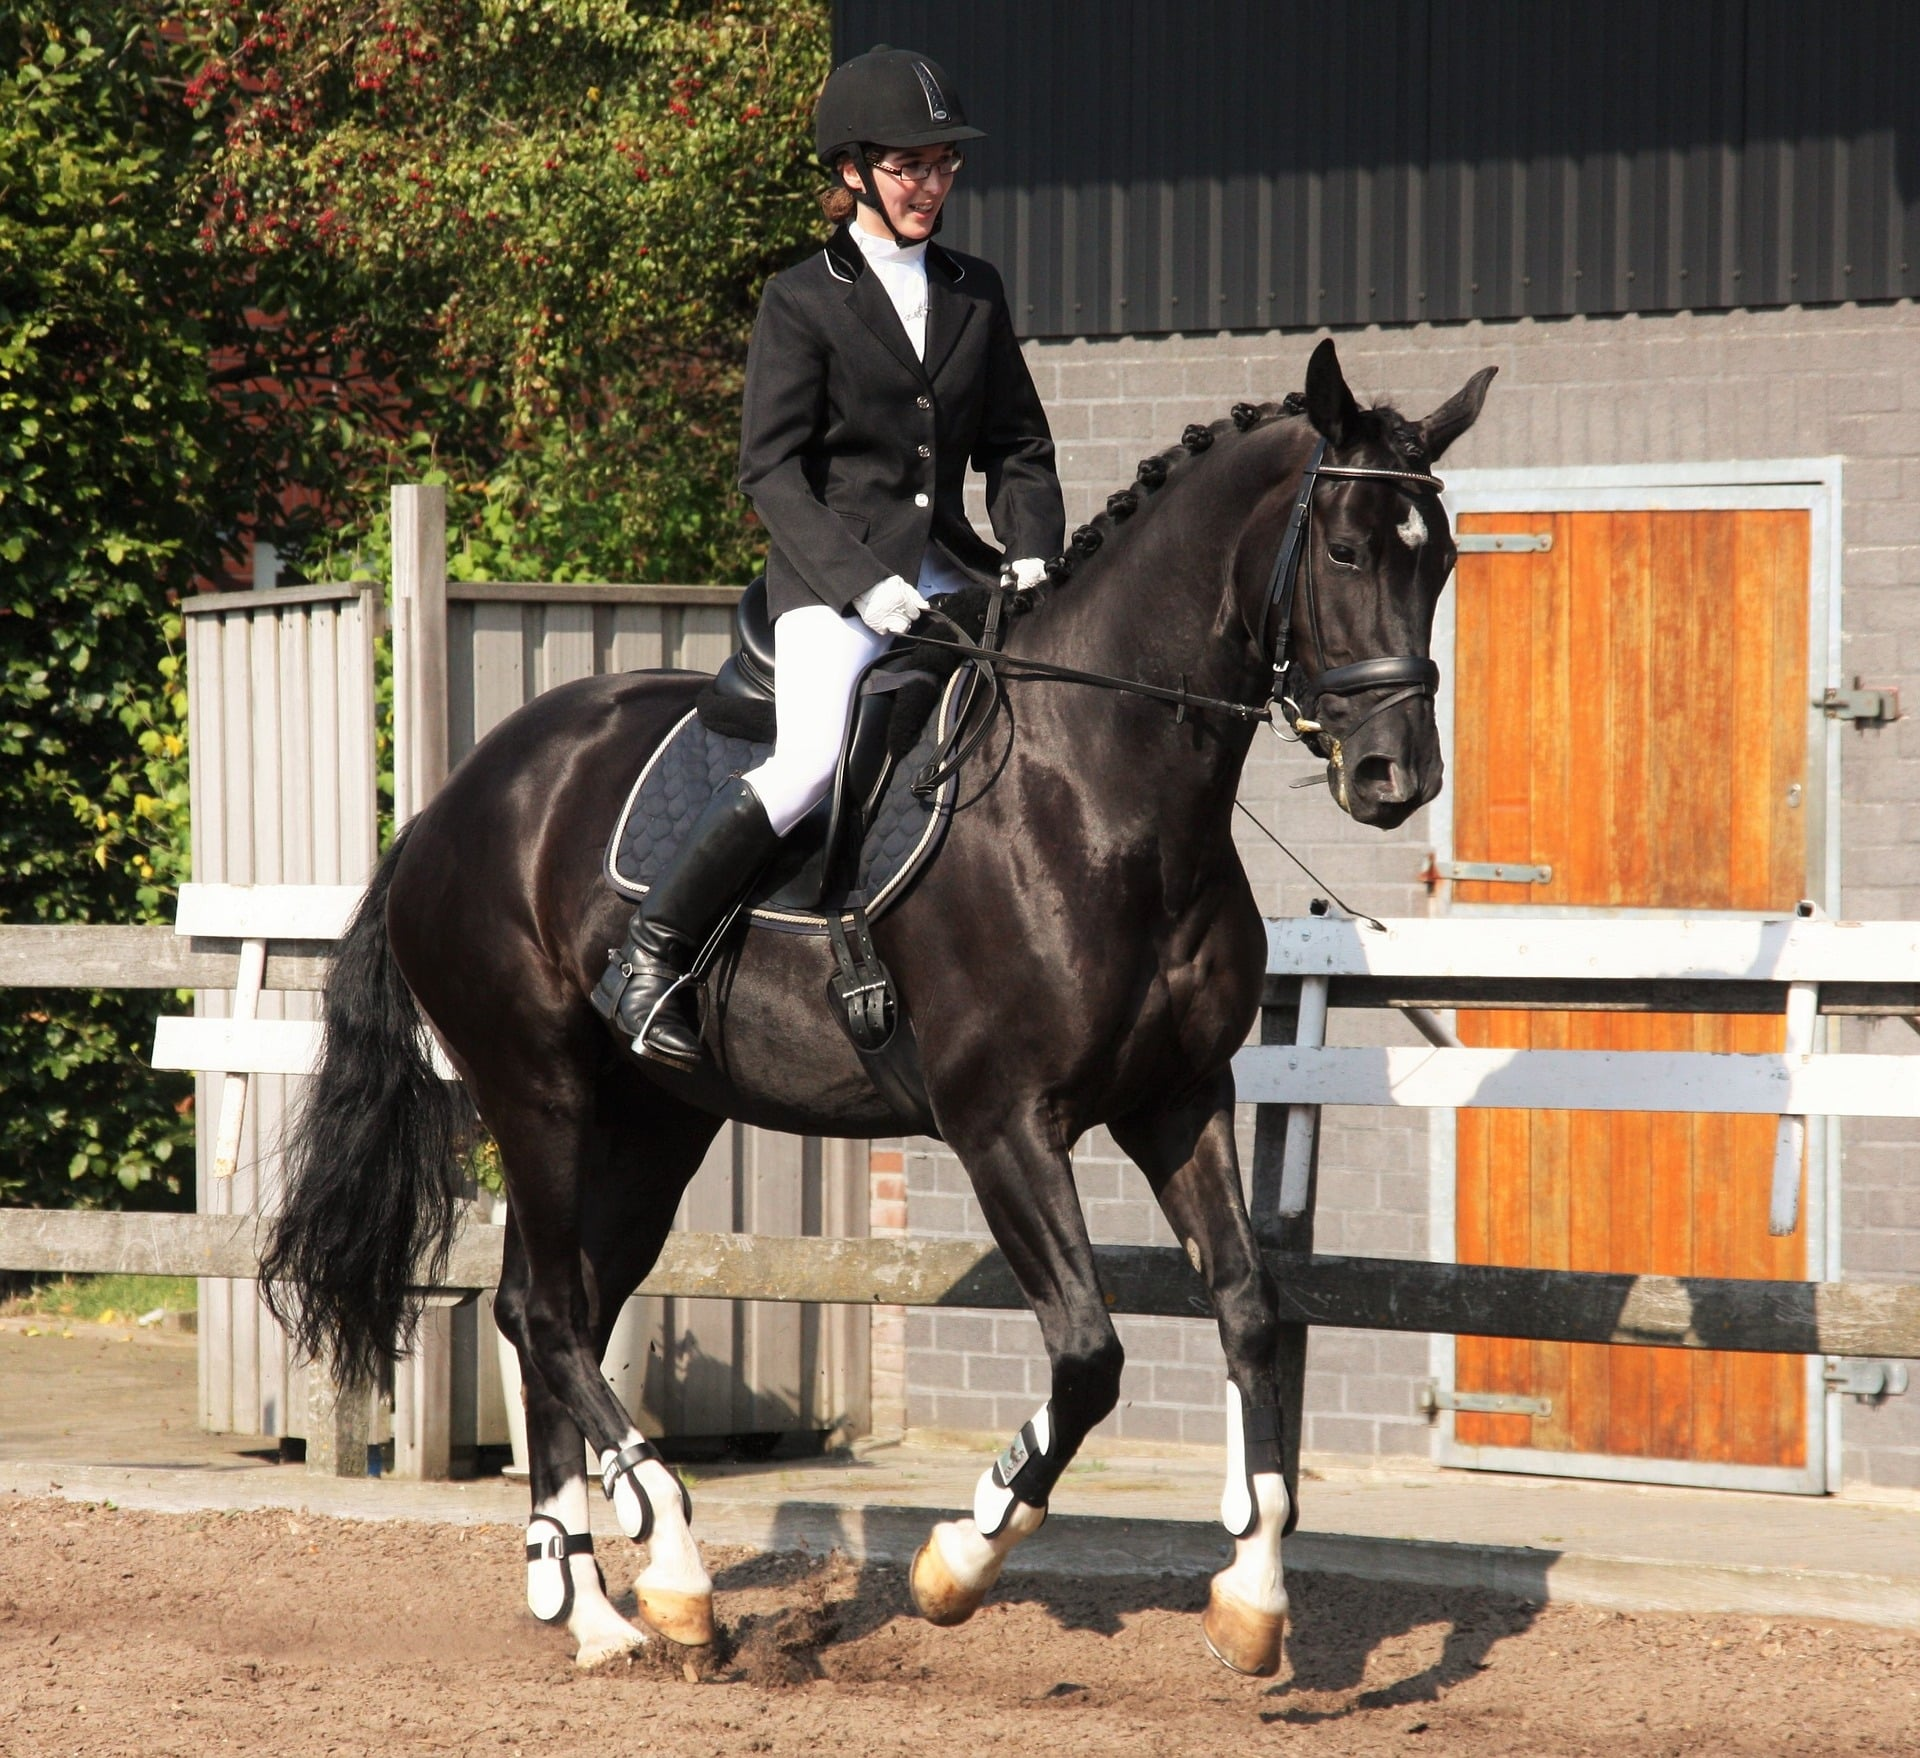 dressage wear is formal and conservative